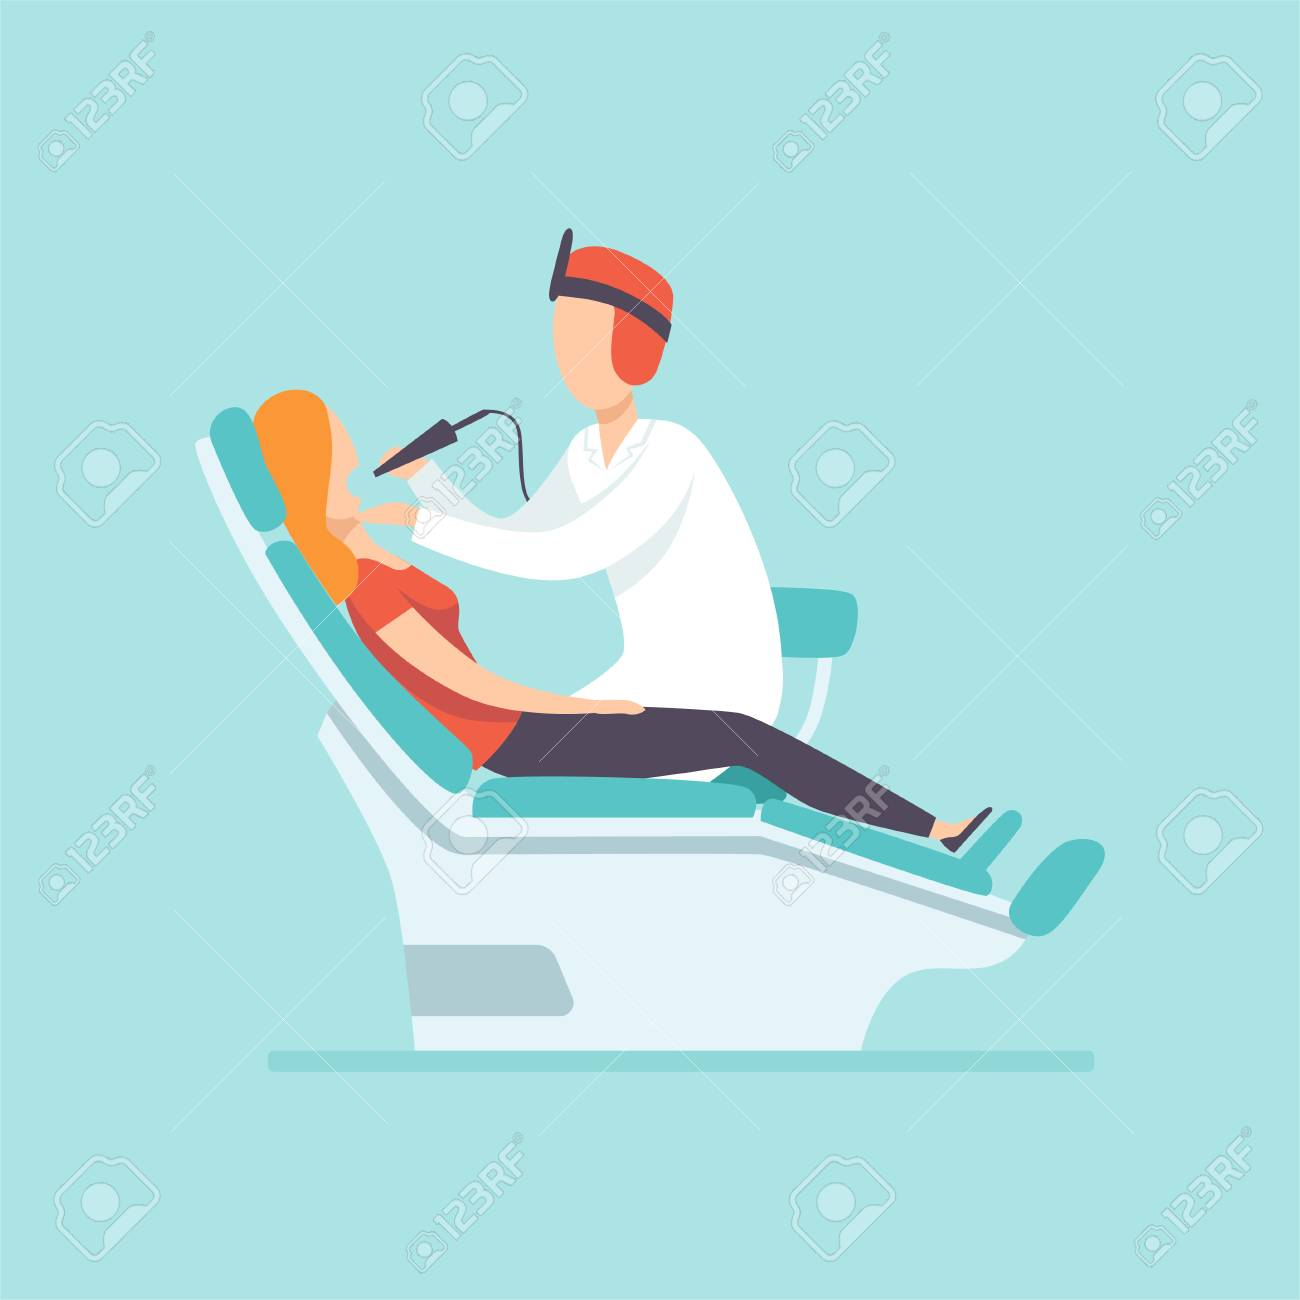 Male dentist examining female patient at dental clinic , medical treatment and healthcare concept vector Illustration in cartoon style - 114711850